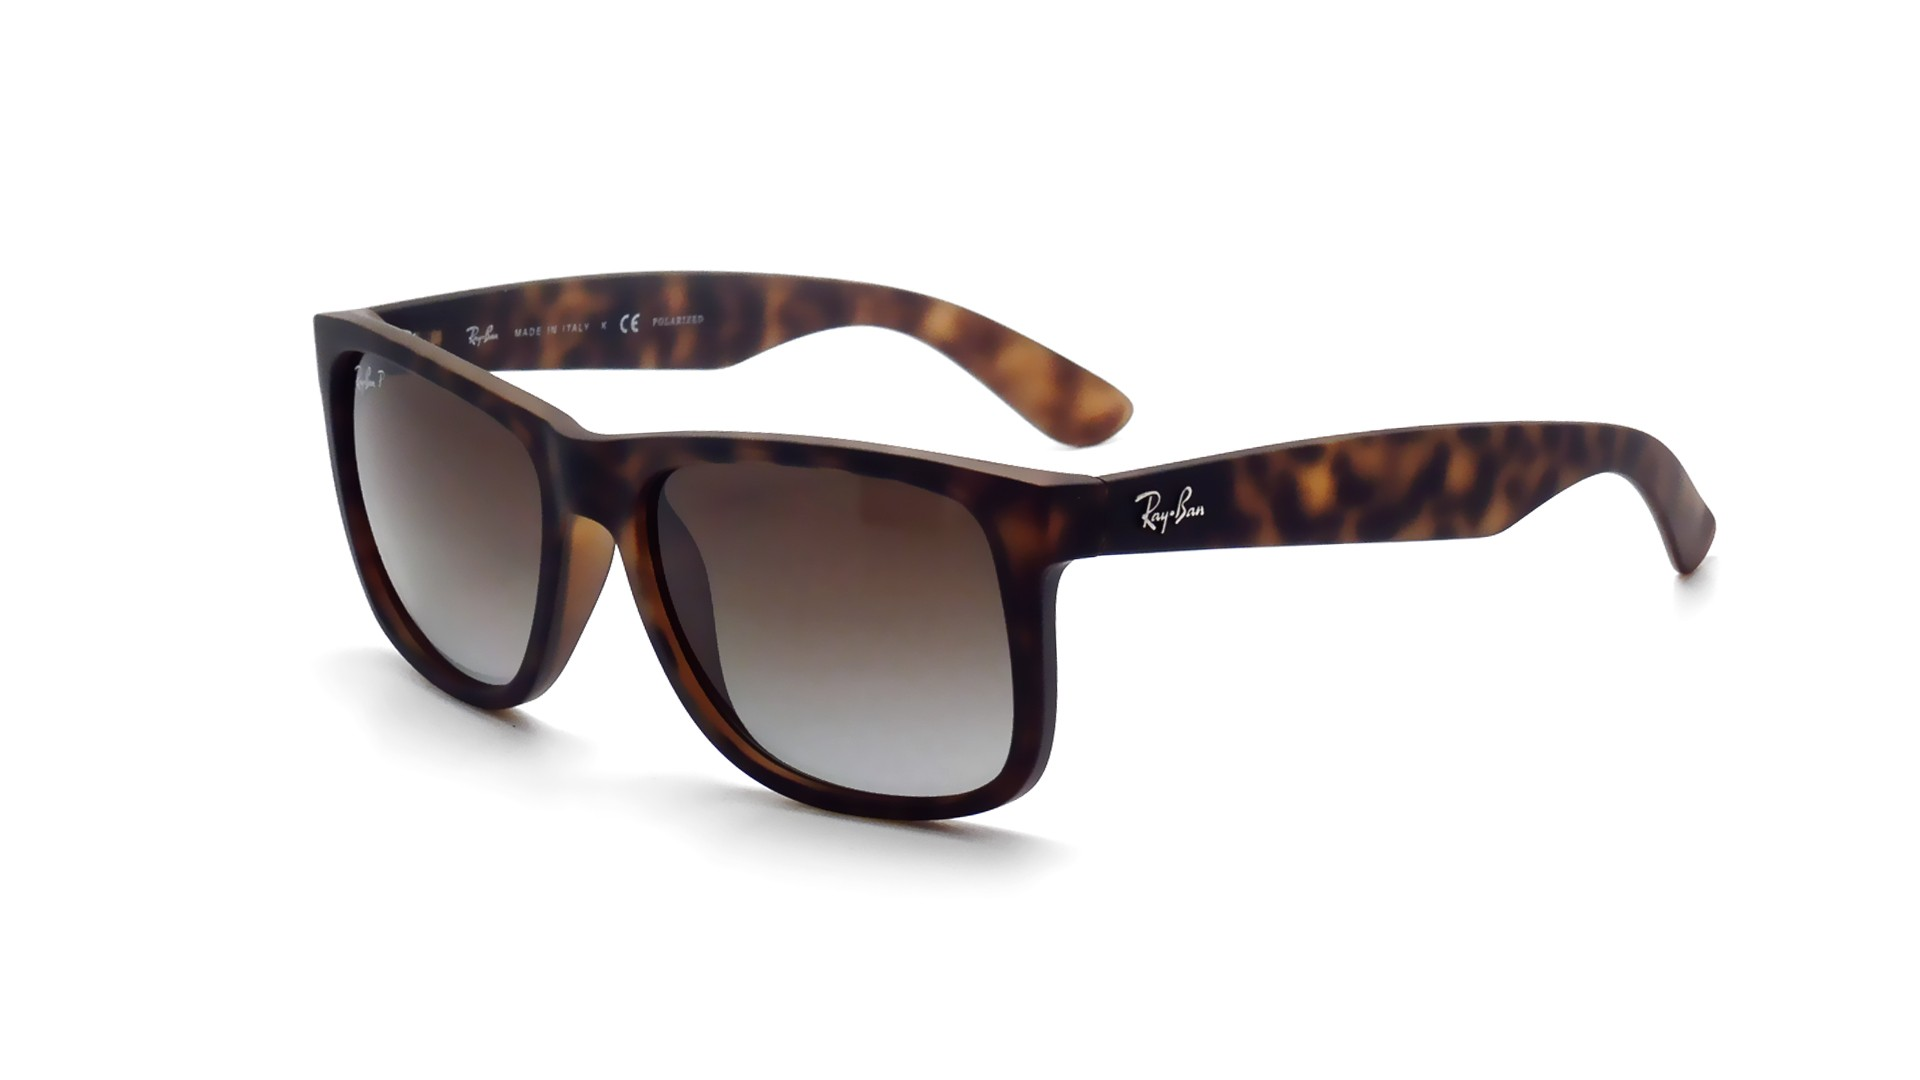 47a17d235f Ray Ban Justin Sunglasses Rb4165 710 13 54-16tortoise Frame Brown Gradient  Lenses